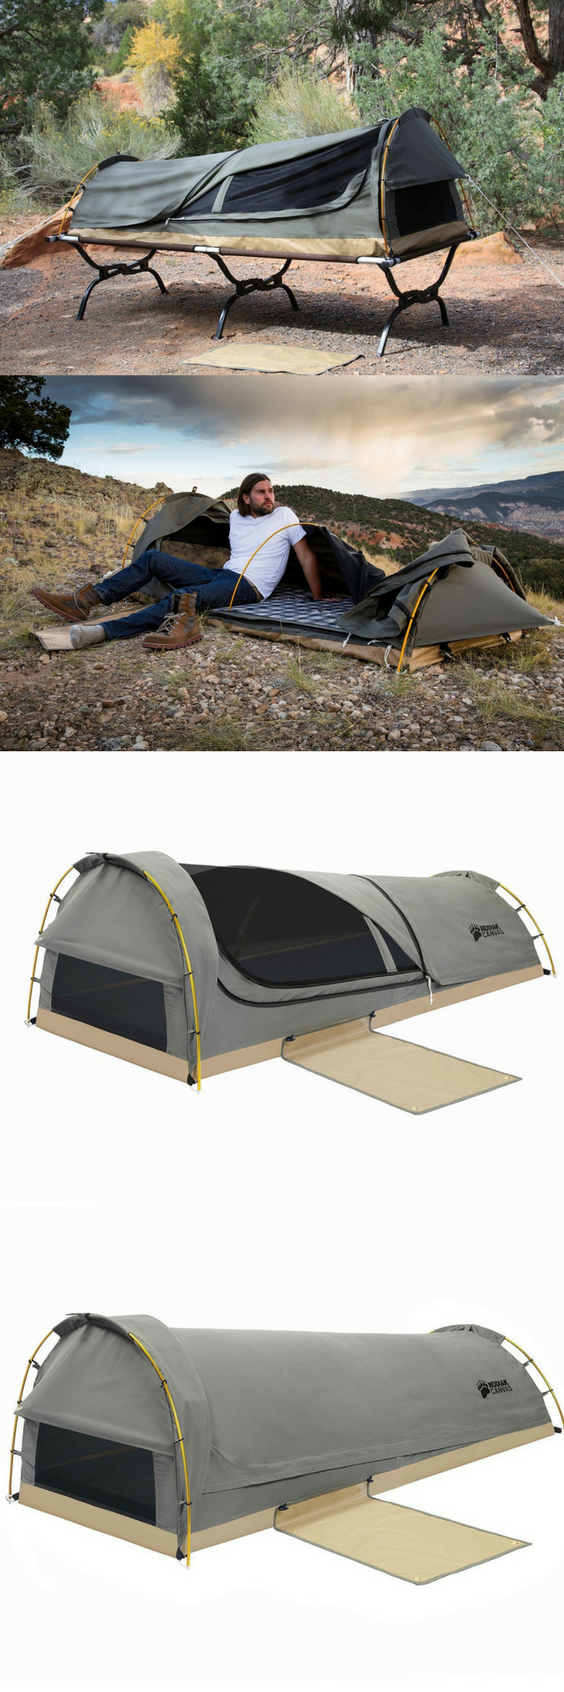 best service e7cc1 0b1d0 Perfect for spur-of-the-moment adventures, the Kodiak Canvas ...